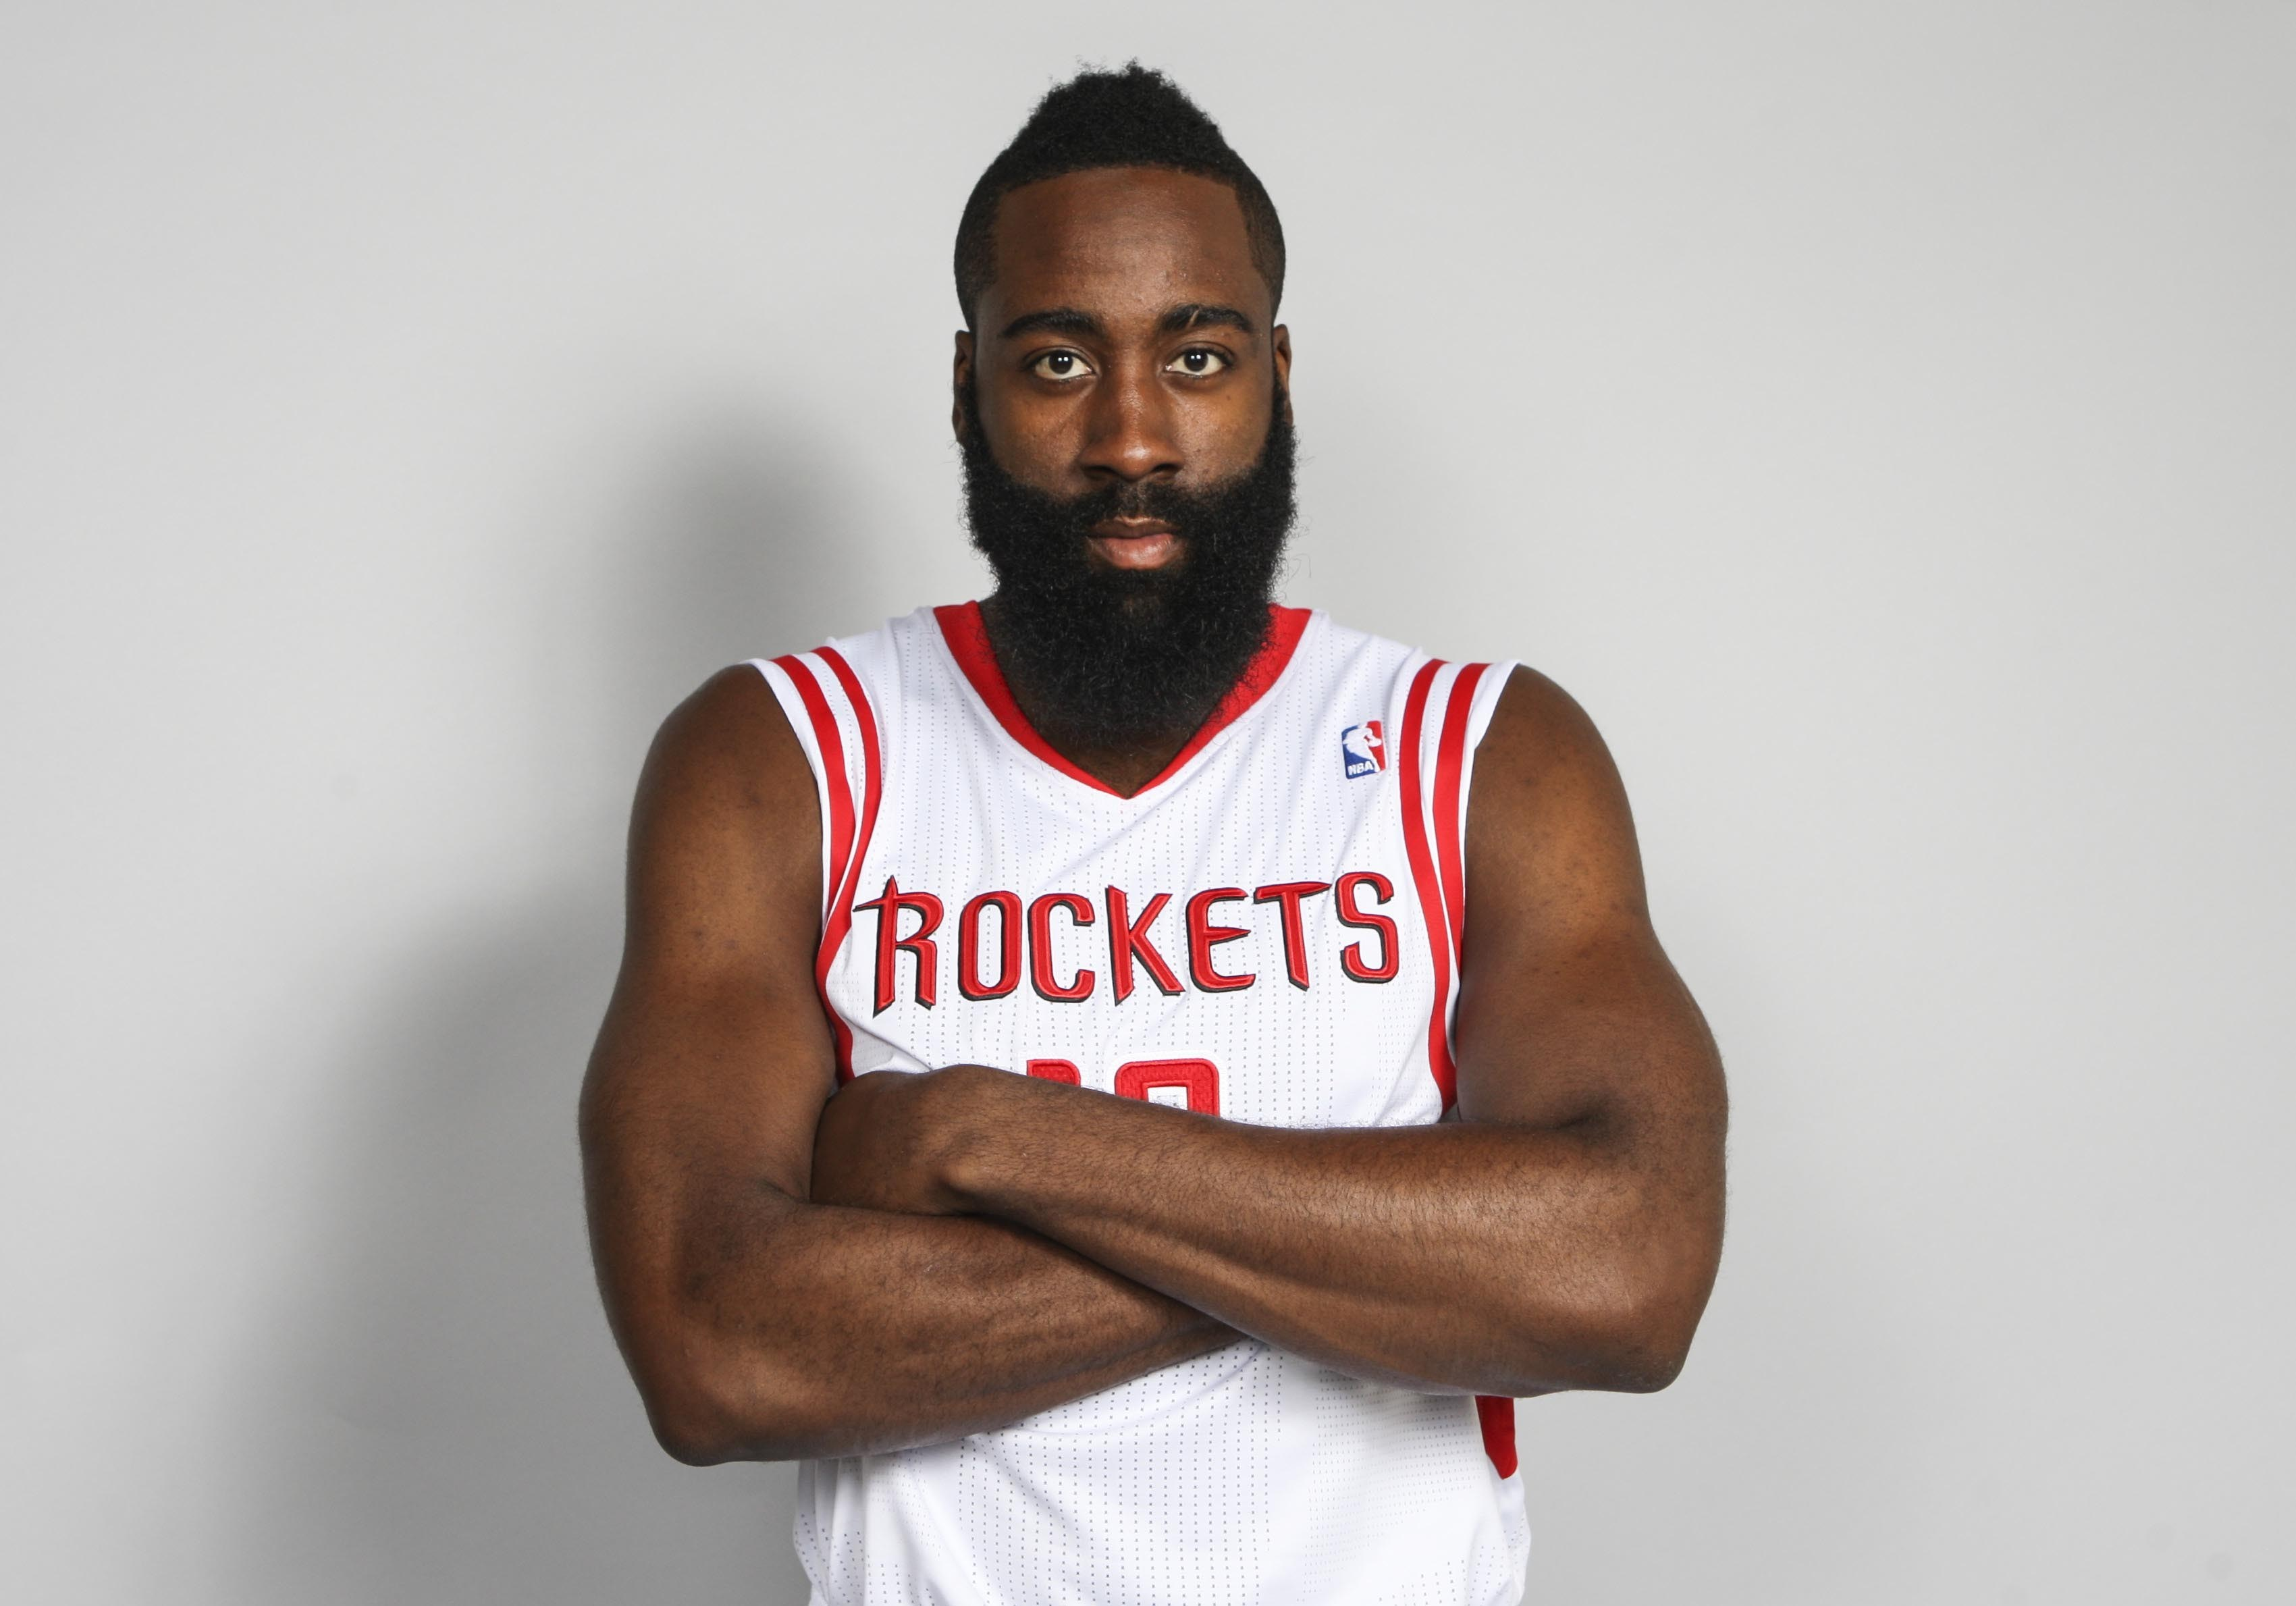 James Harden | Known people - famous people news and biographies